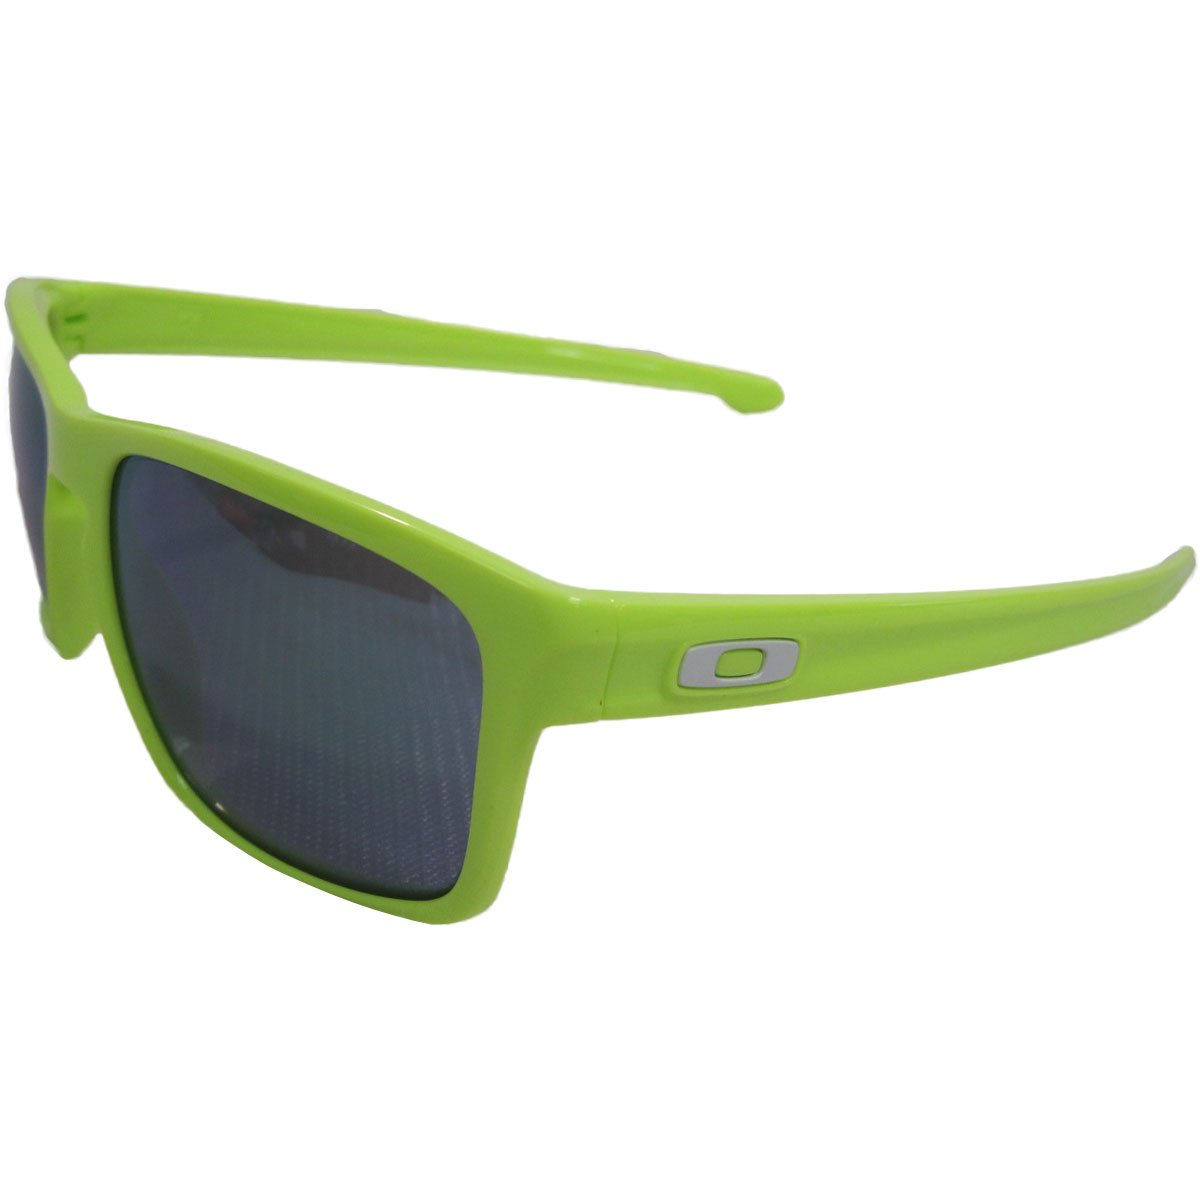 Oakley Men's Sliver Machinist Sunglasses,PolRtnaBurn